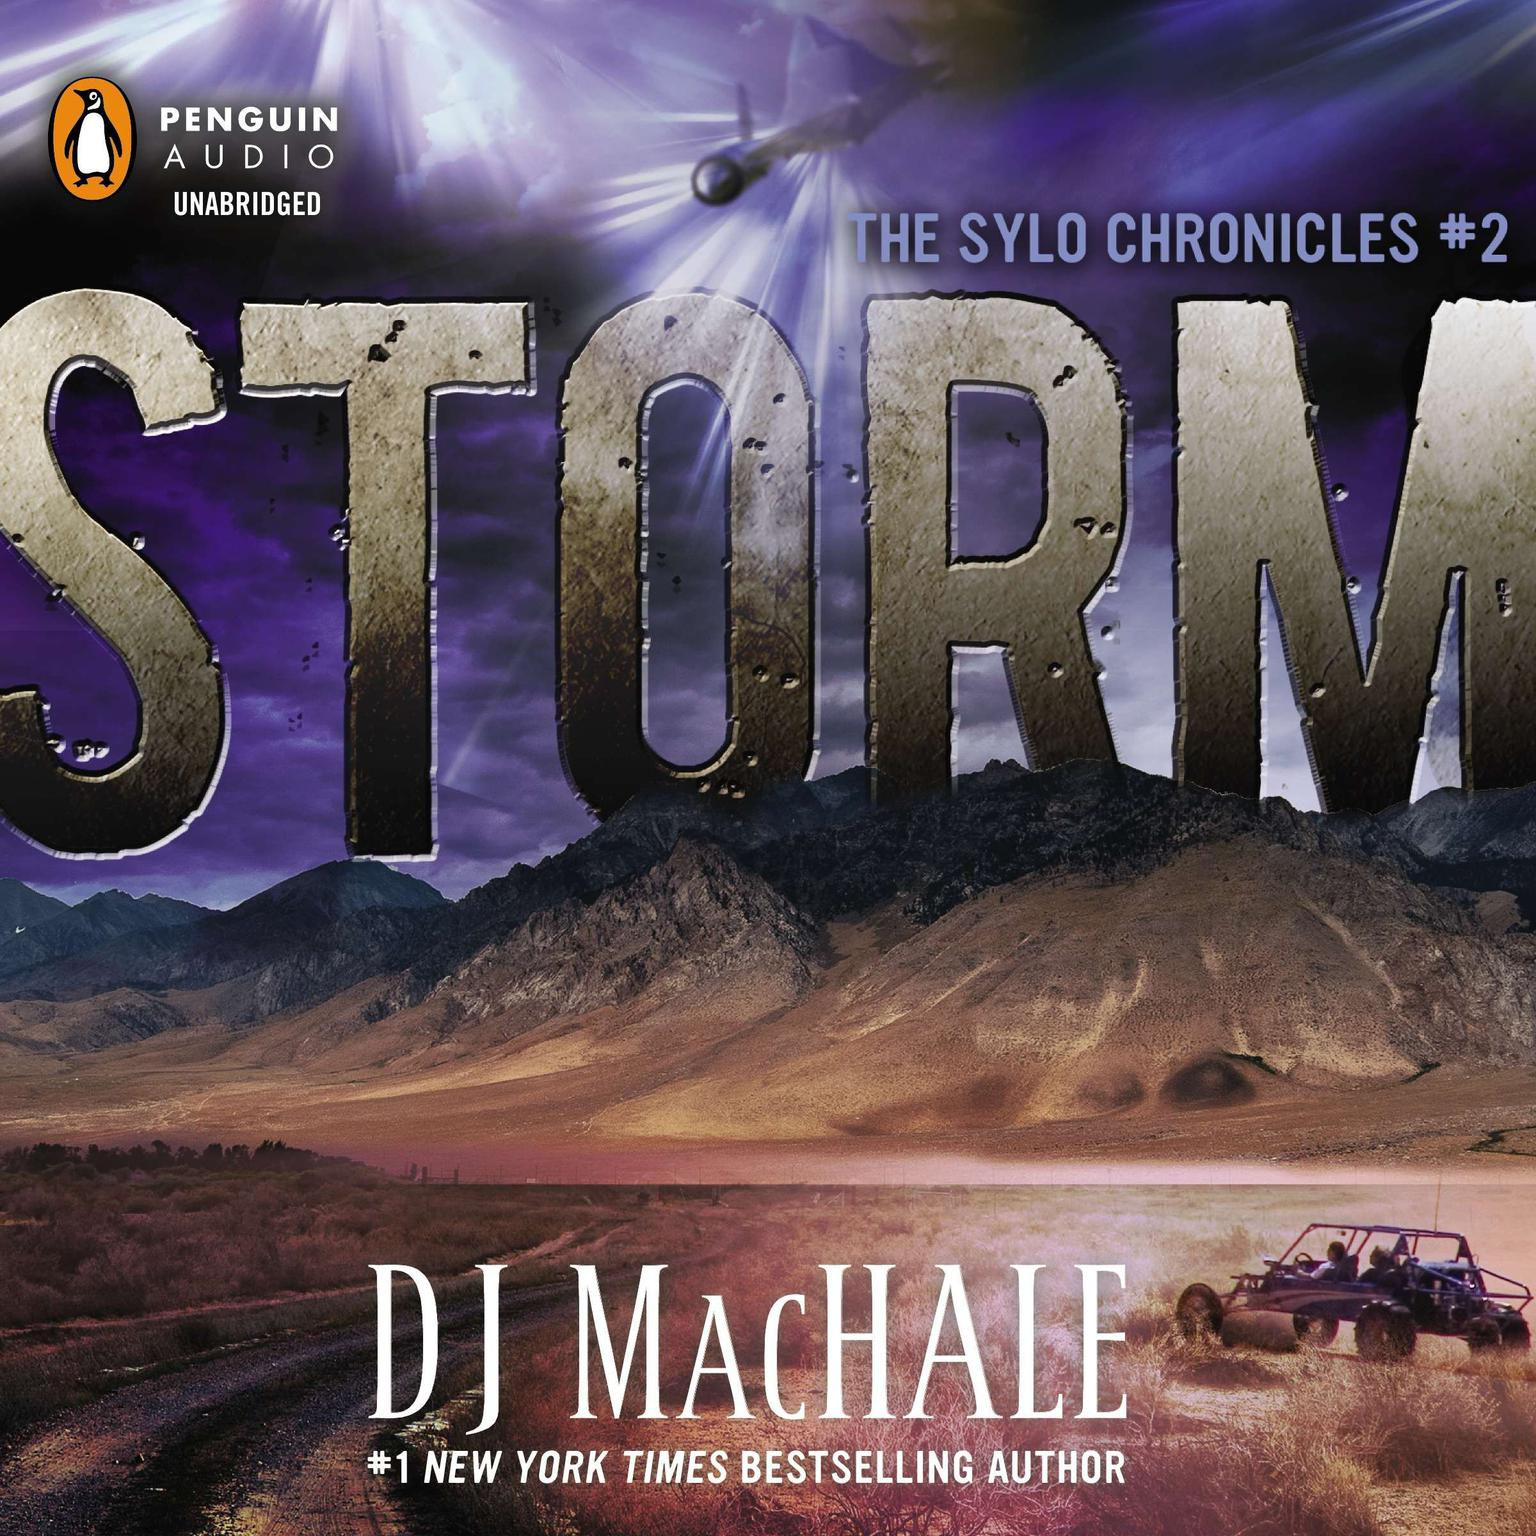 Printable Storm: The SYLO Chronicles #2 Audiobook Cover Art